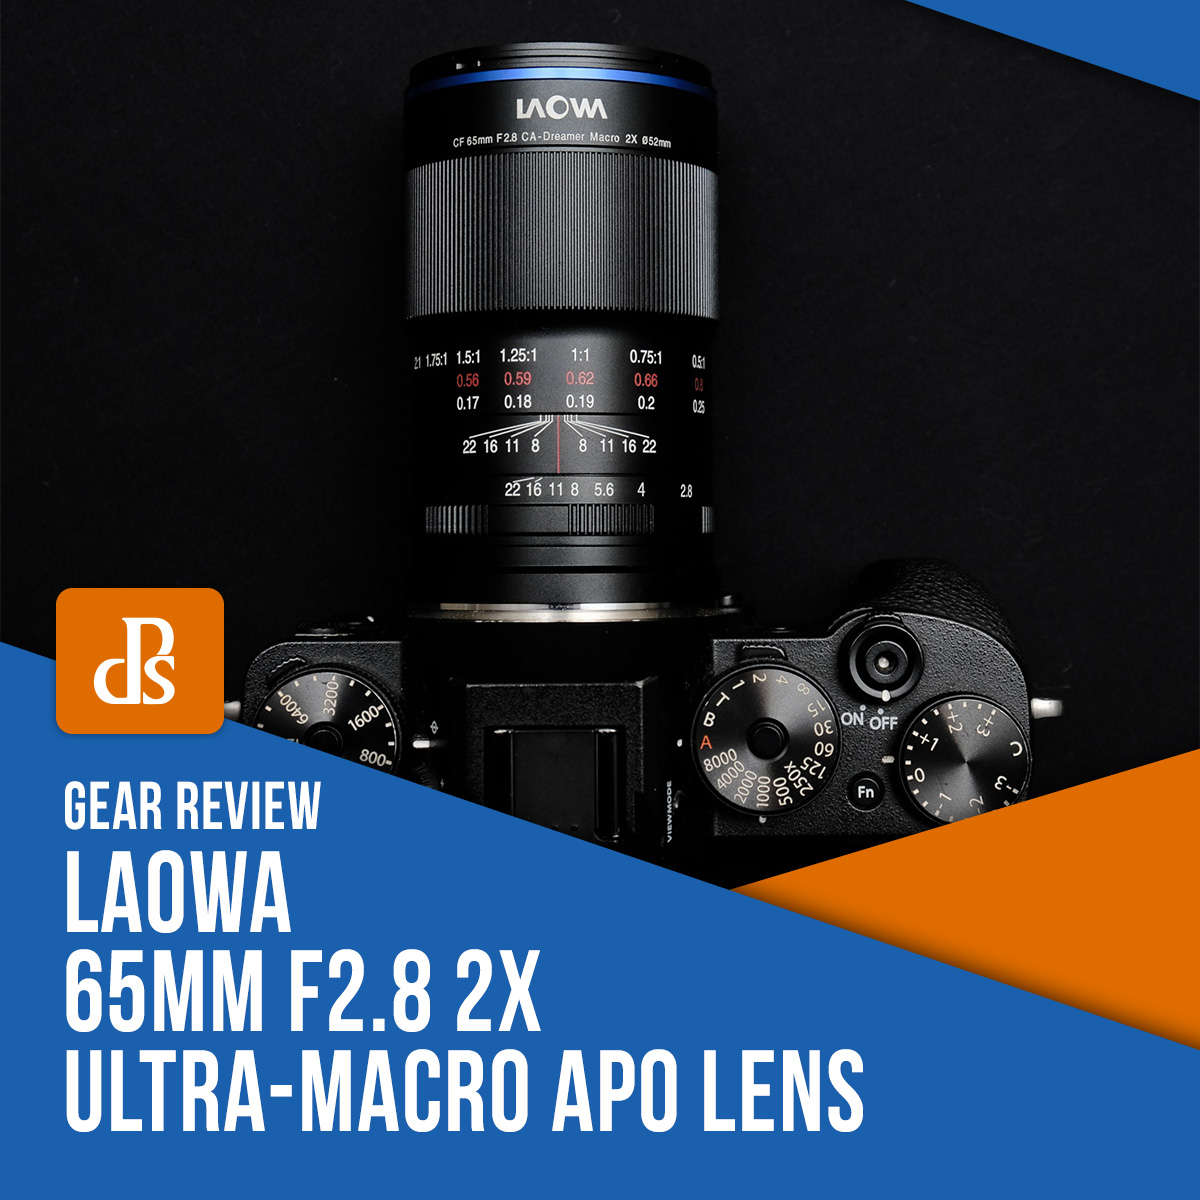 Laowa-65mm-f2.8-2X-Ultra-Macro-APO-lens-review